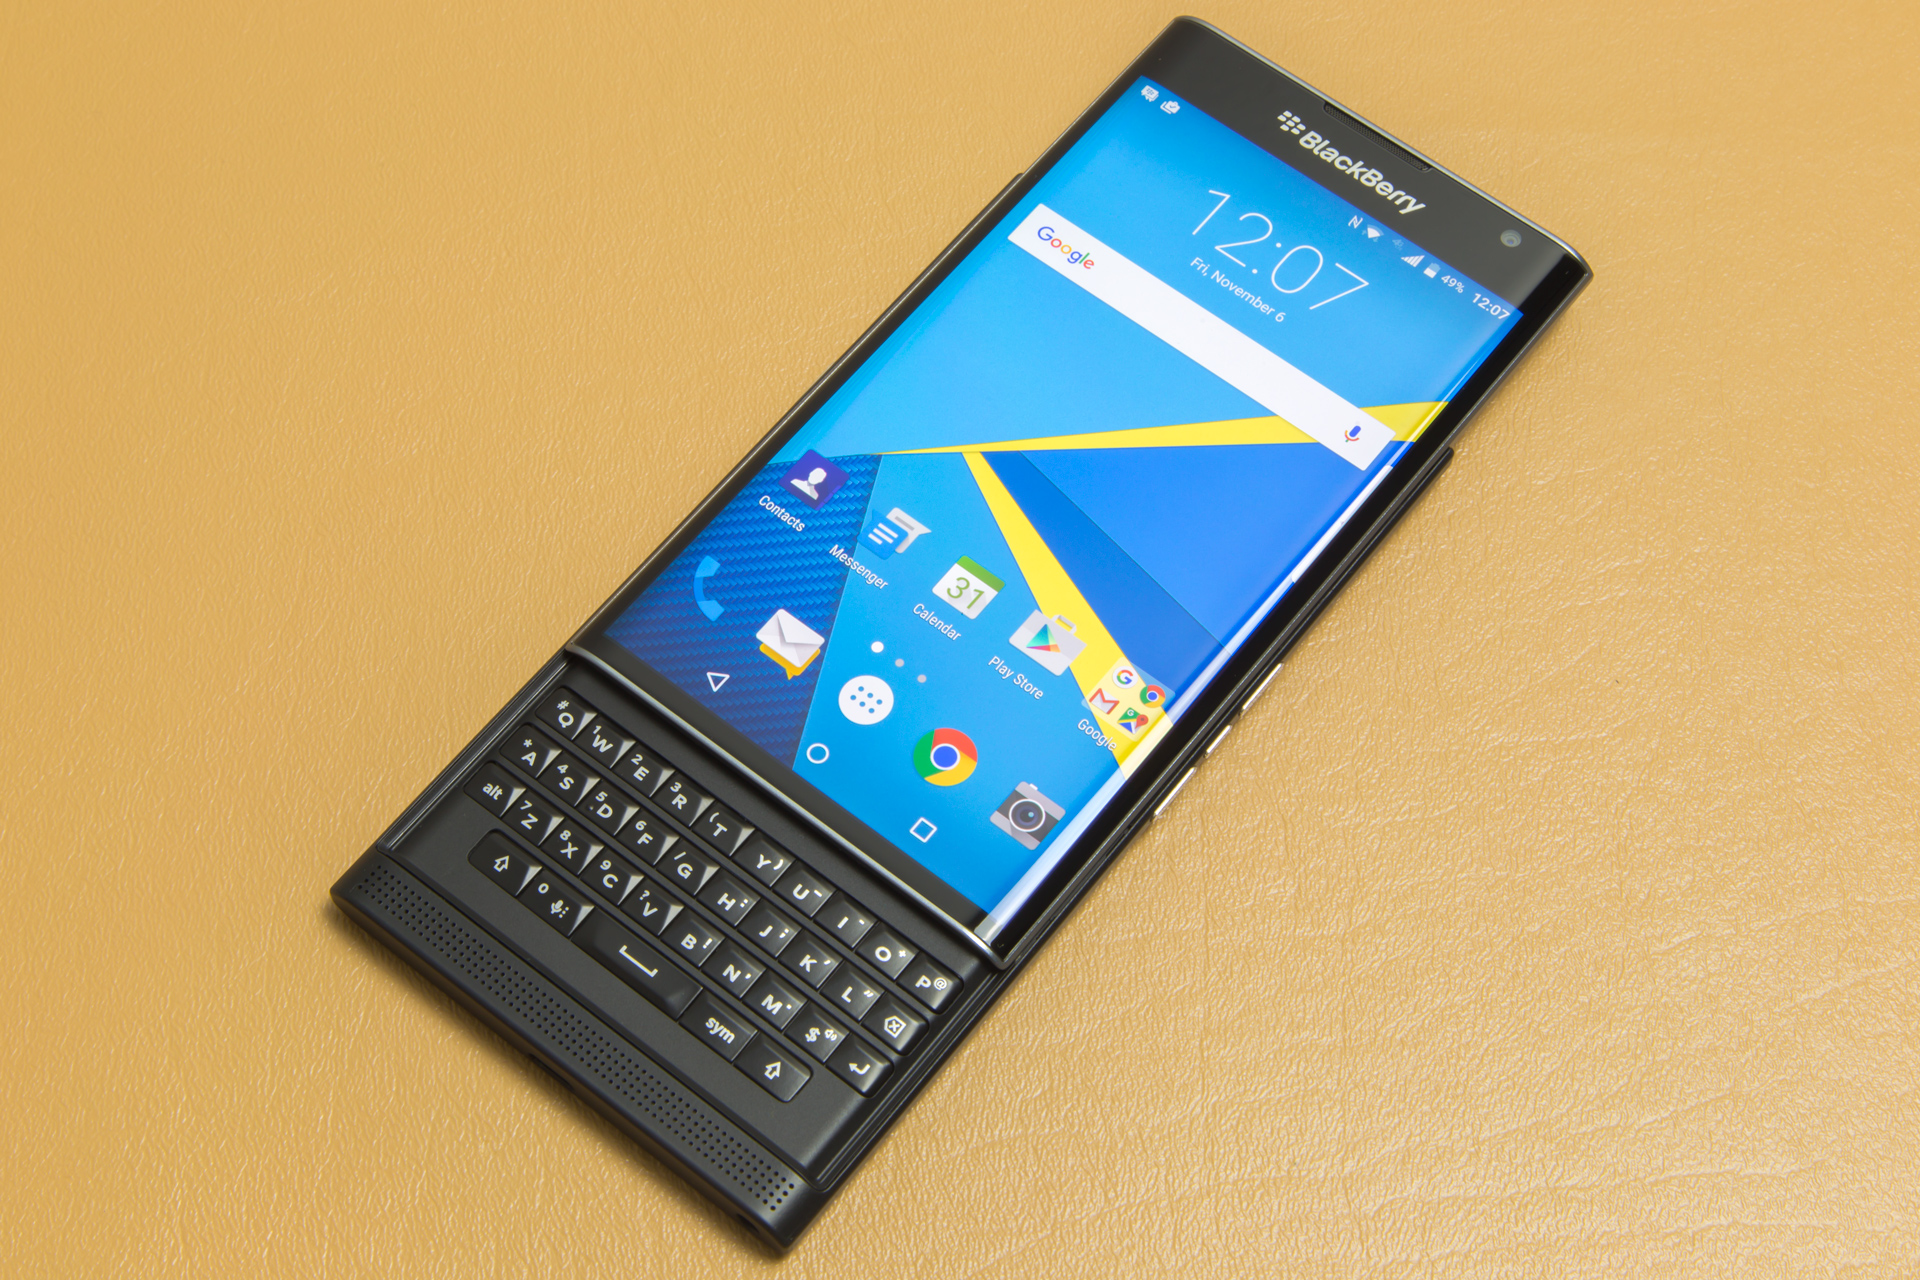 Blackberry Priv Review Android Fixes The Os But The